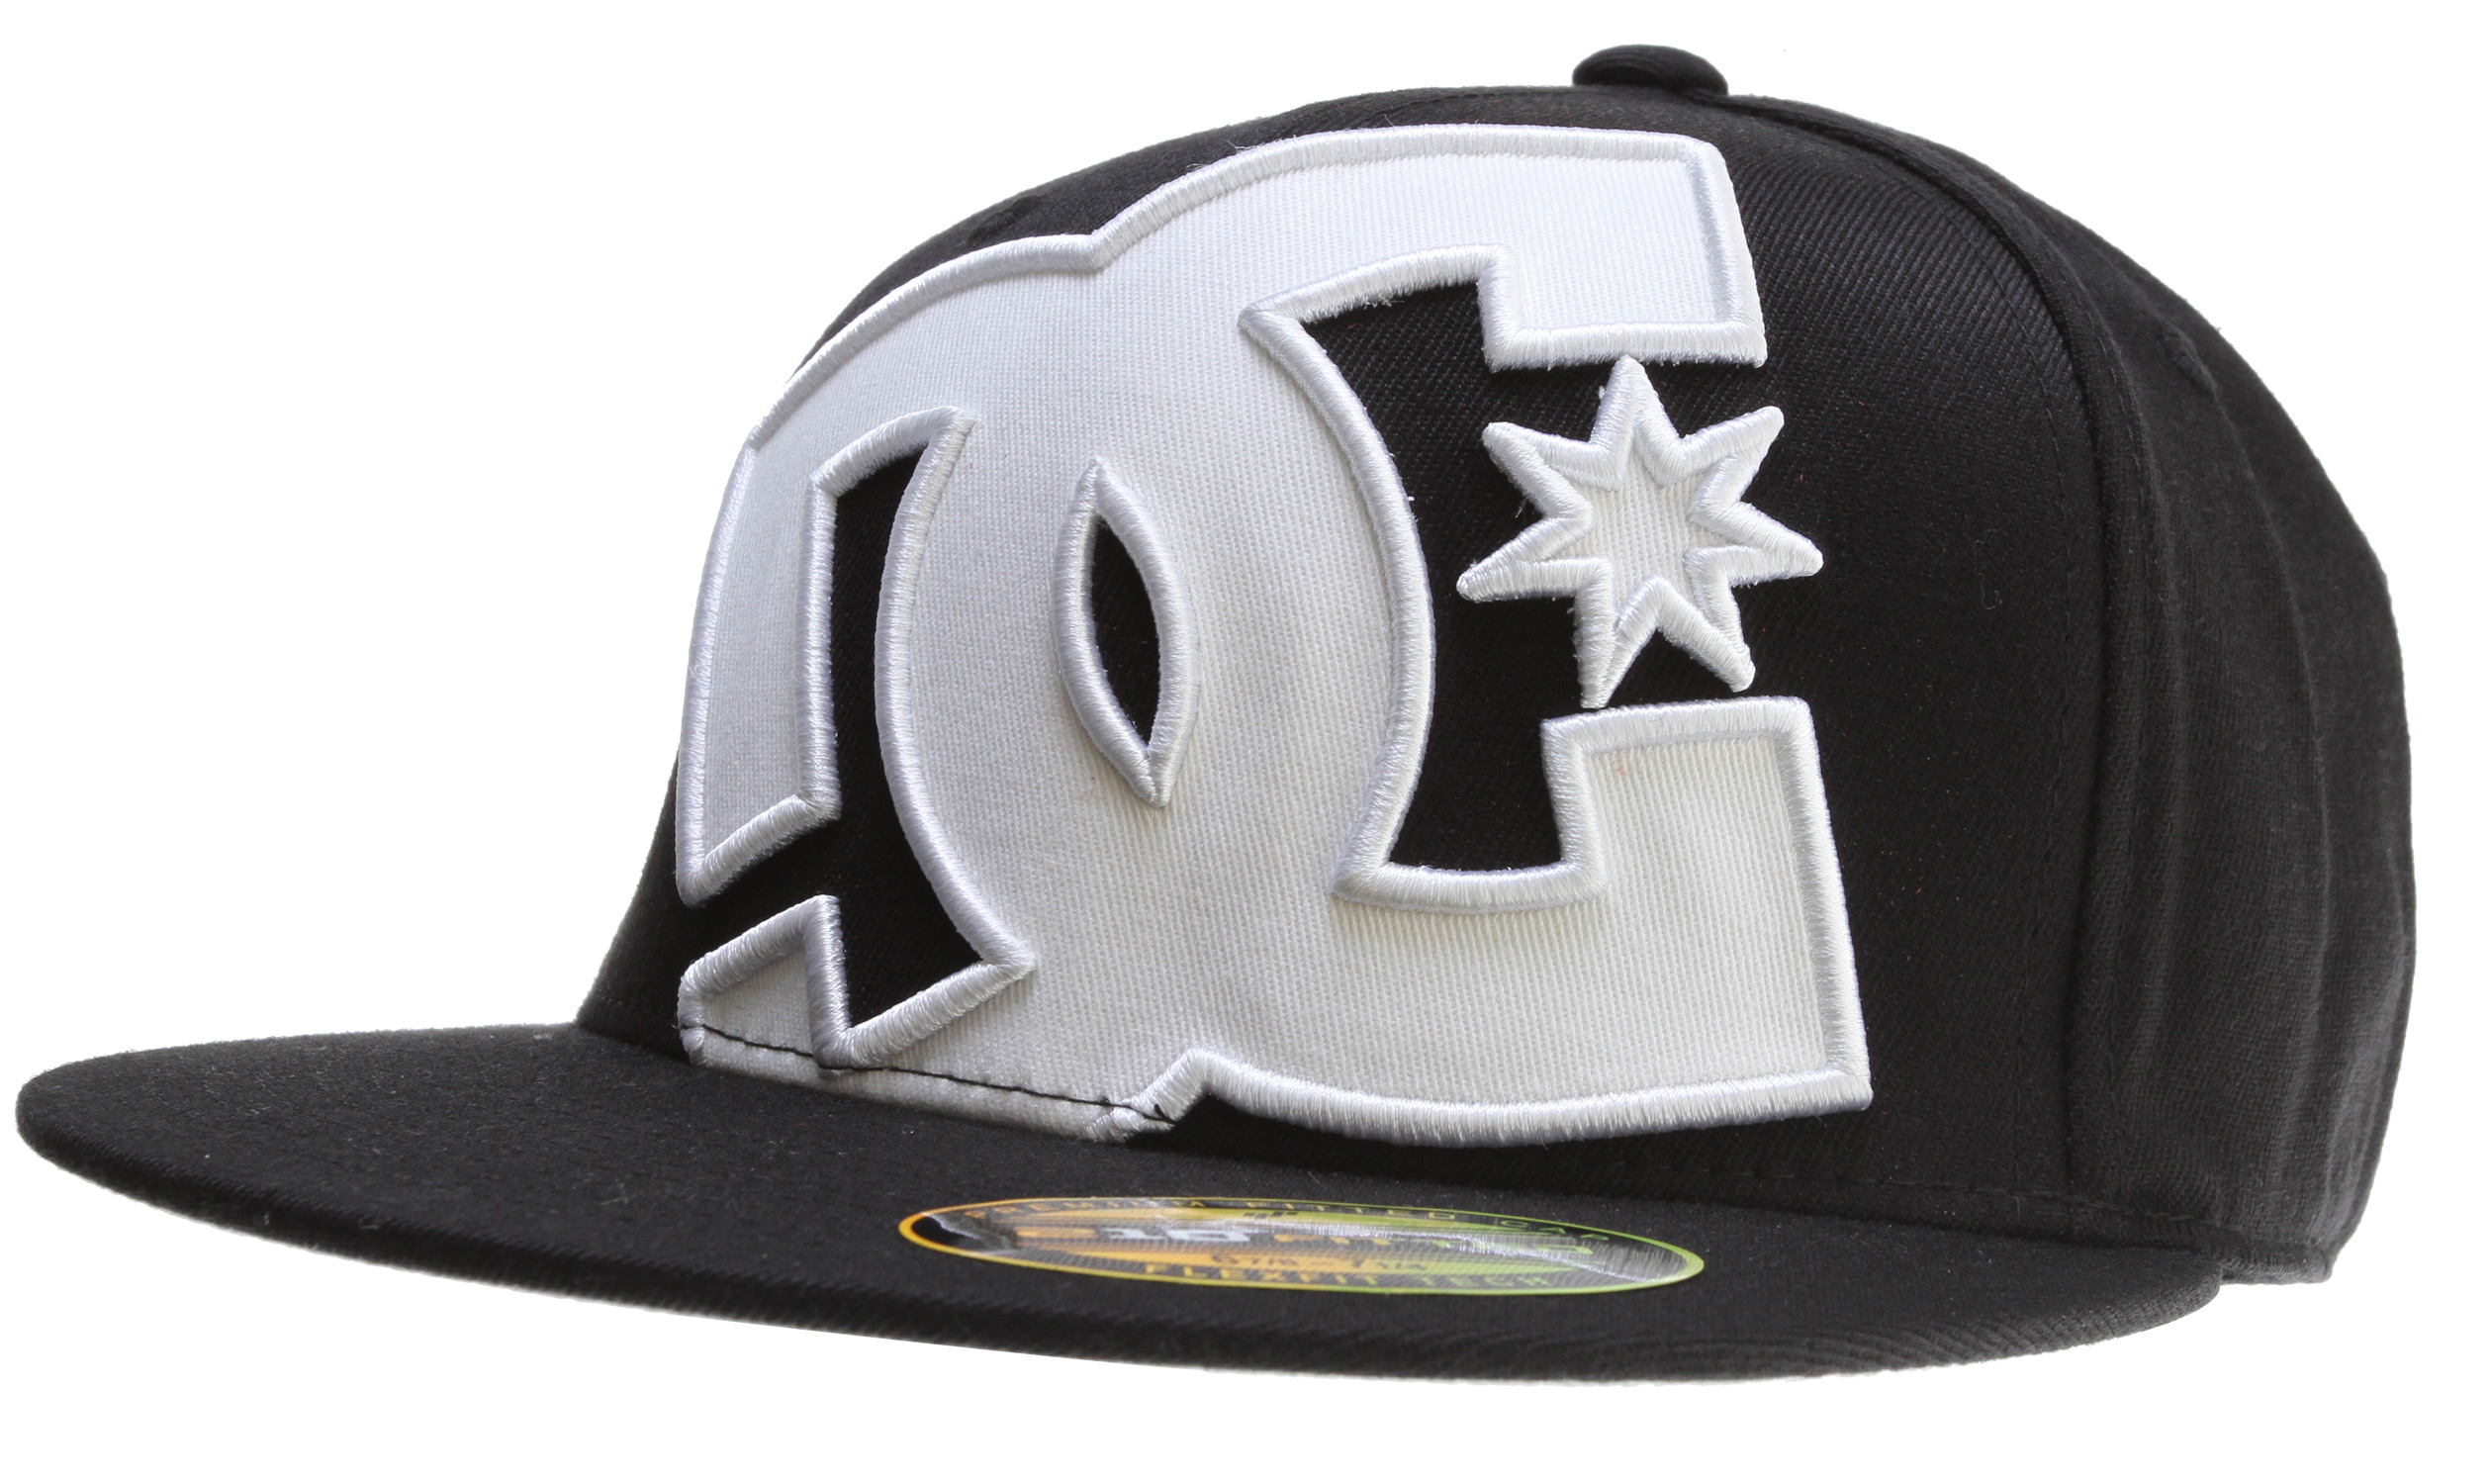 Key Features of the DC Ya Heard Cap: 210 Flexfit 83% Acrylic/15% Wool/2% Spandex Wool blend 210 Flexfit with large pop color applique and back logo - $20.95